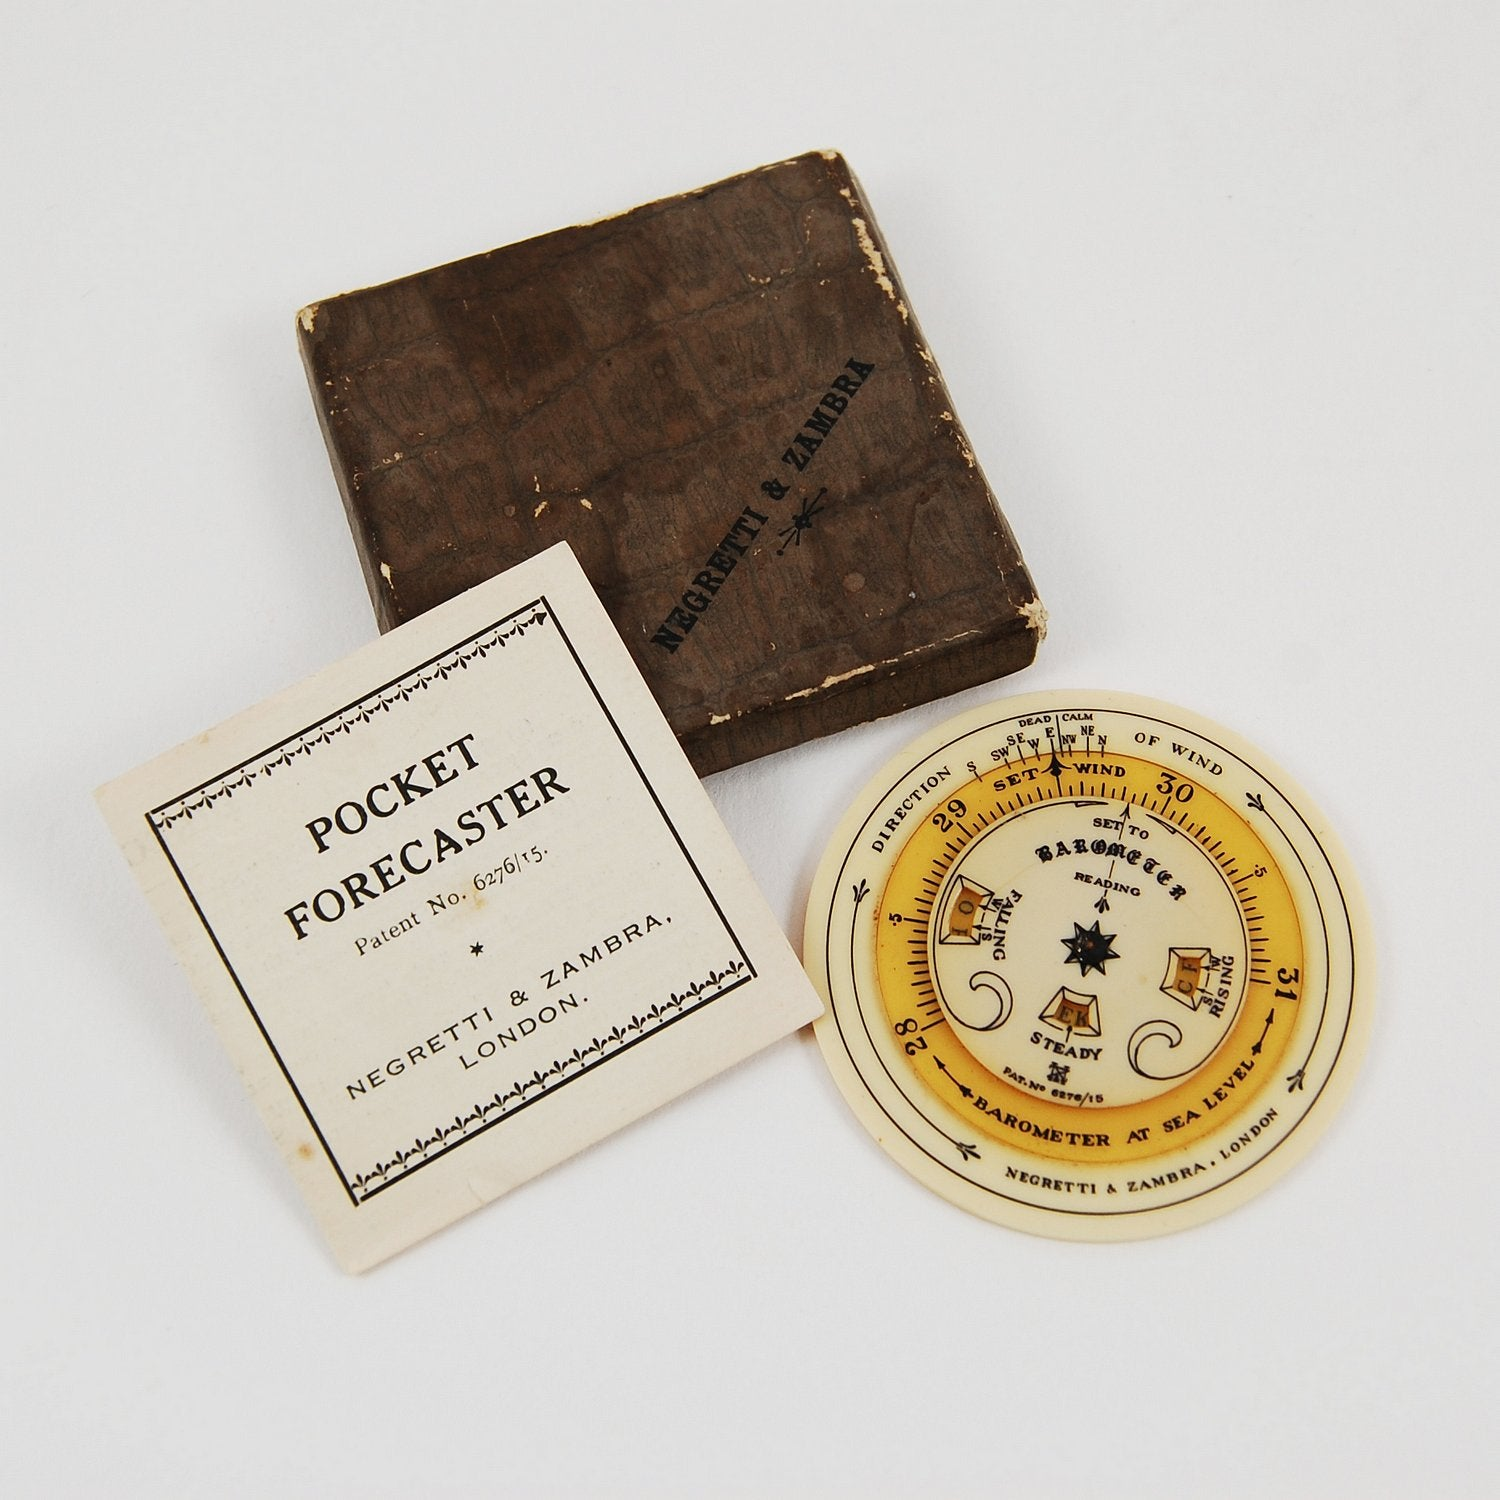 The Original Weather App: A 1915 Pocket Forecaster by Negretti & Zambra